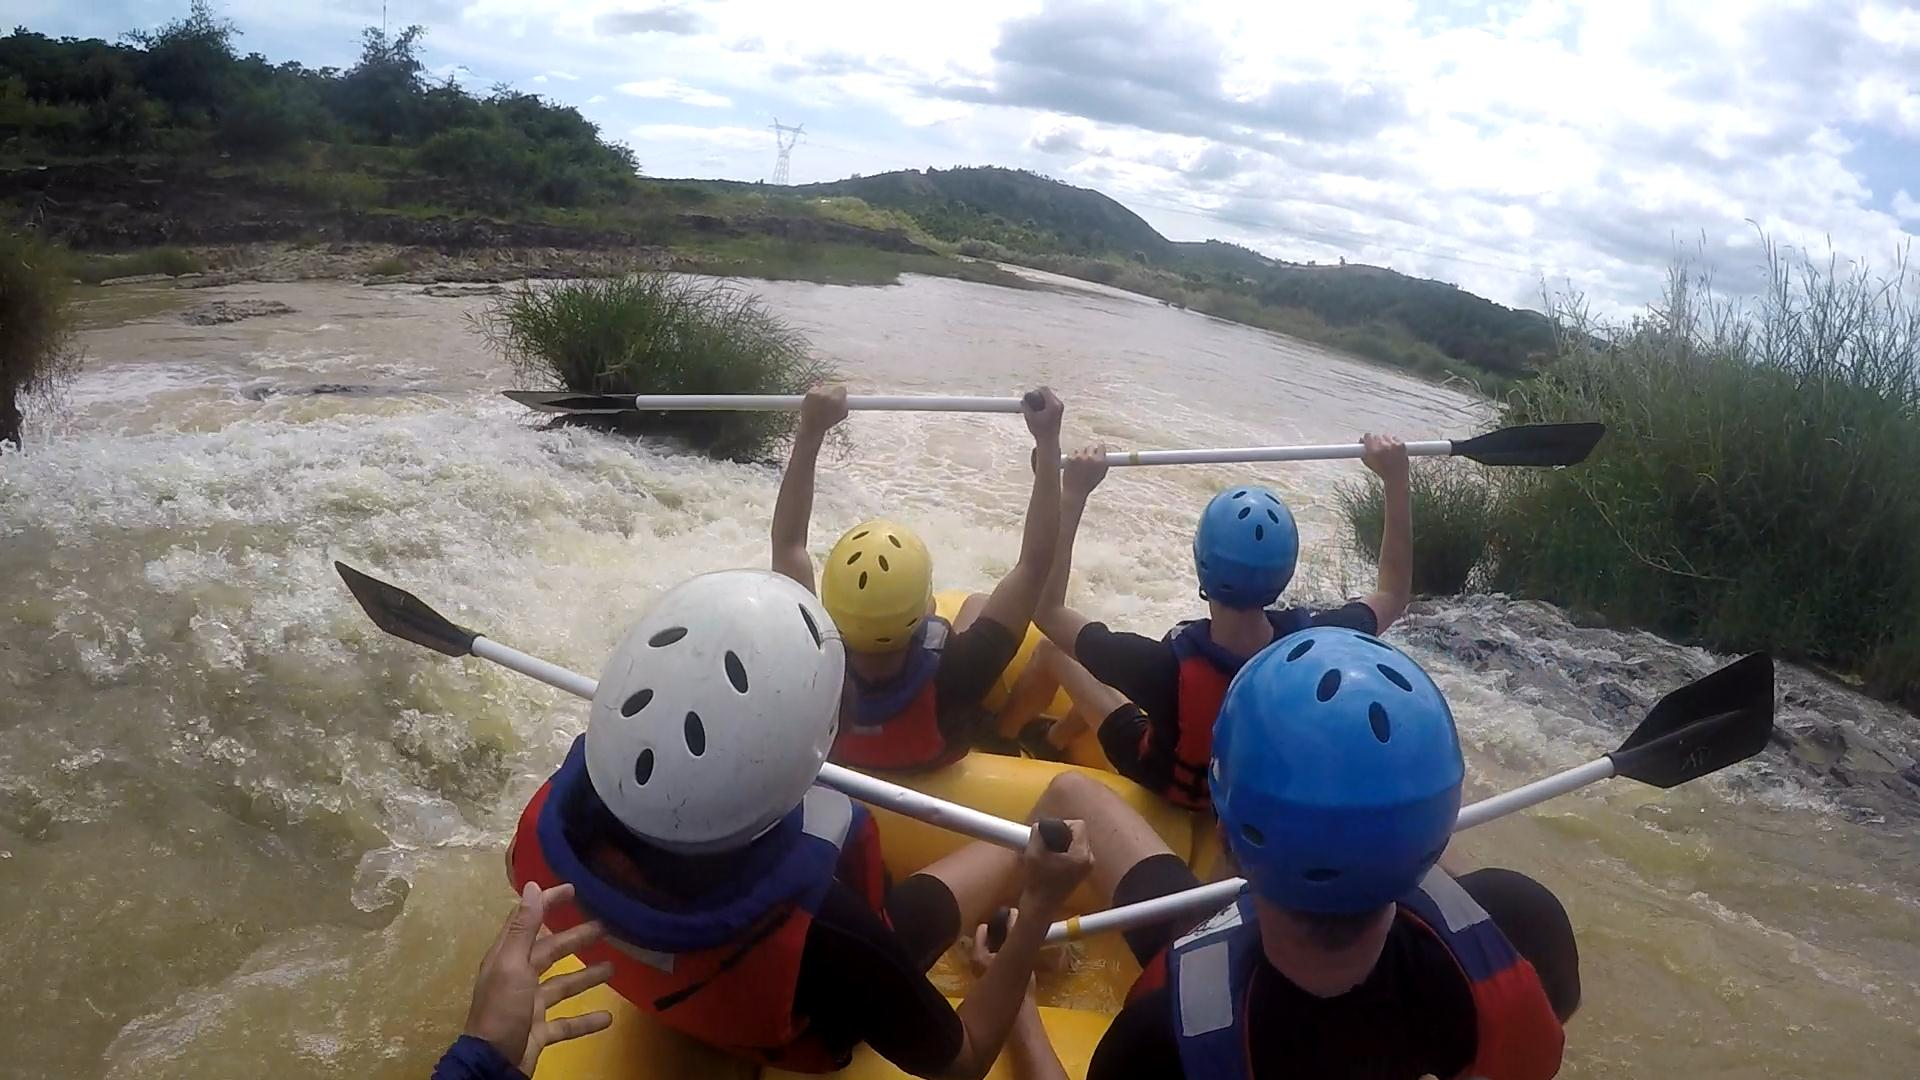 Interesting experiences at Datanla Dalat - white water rafting